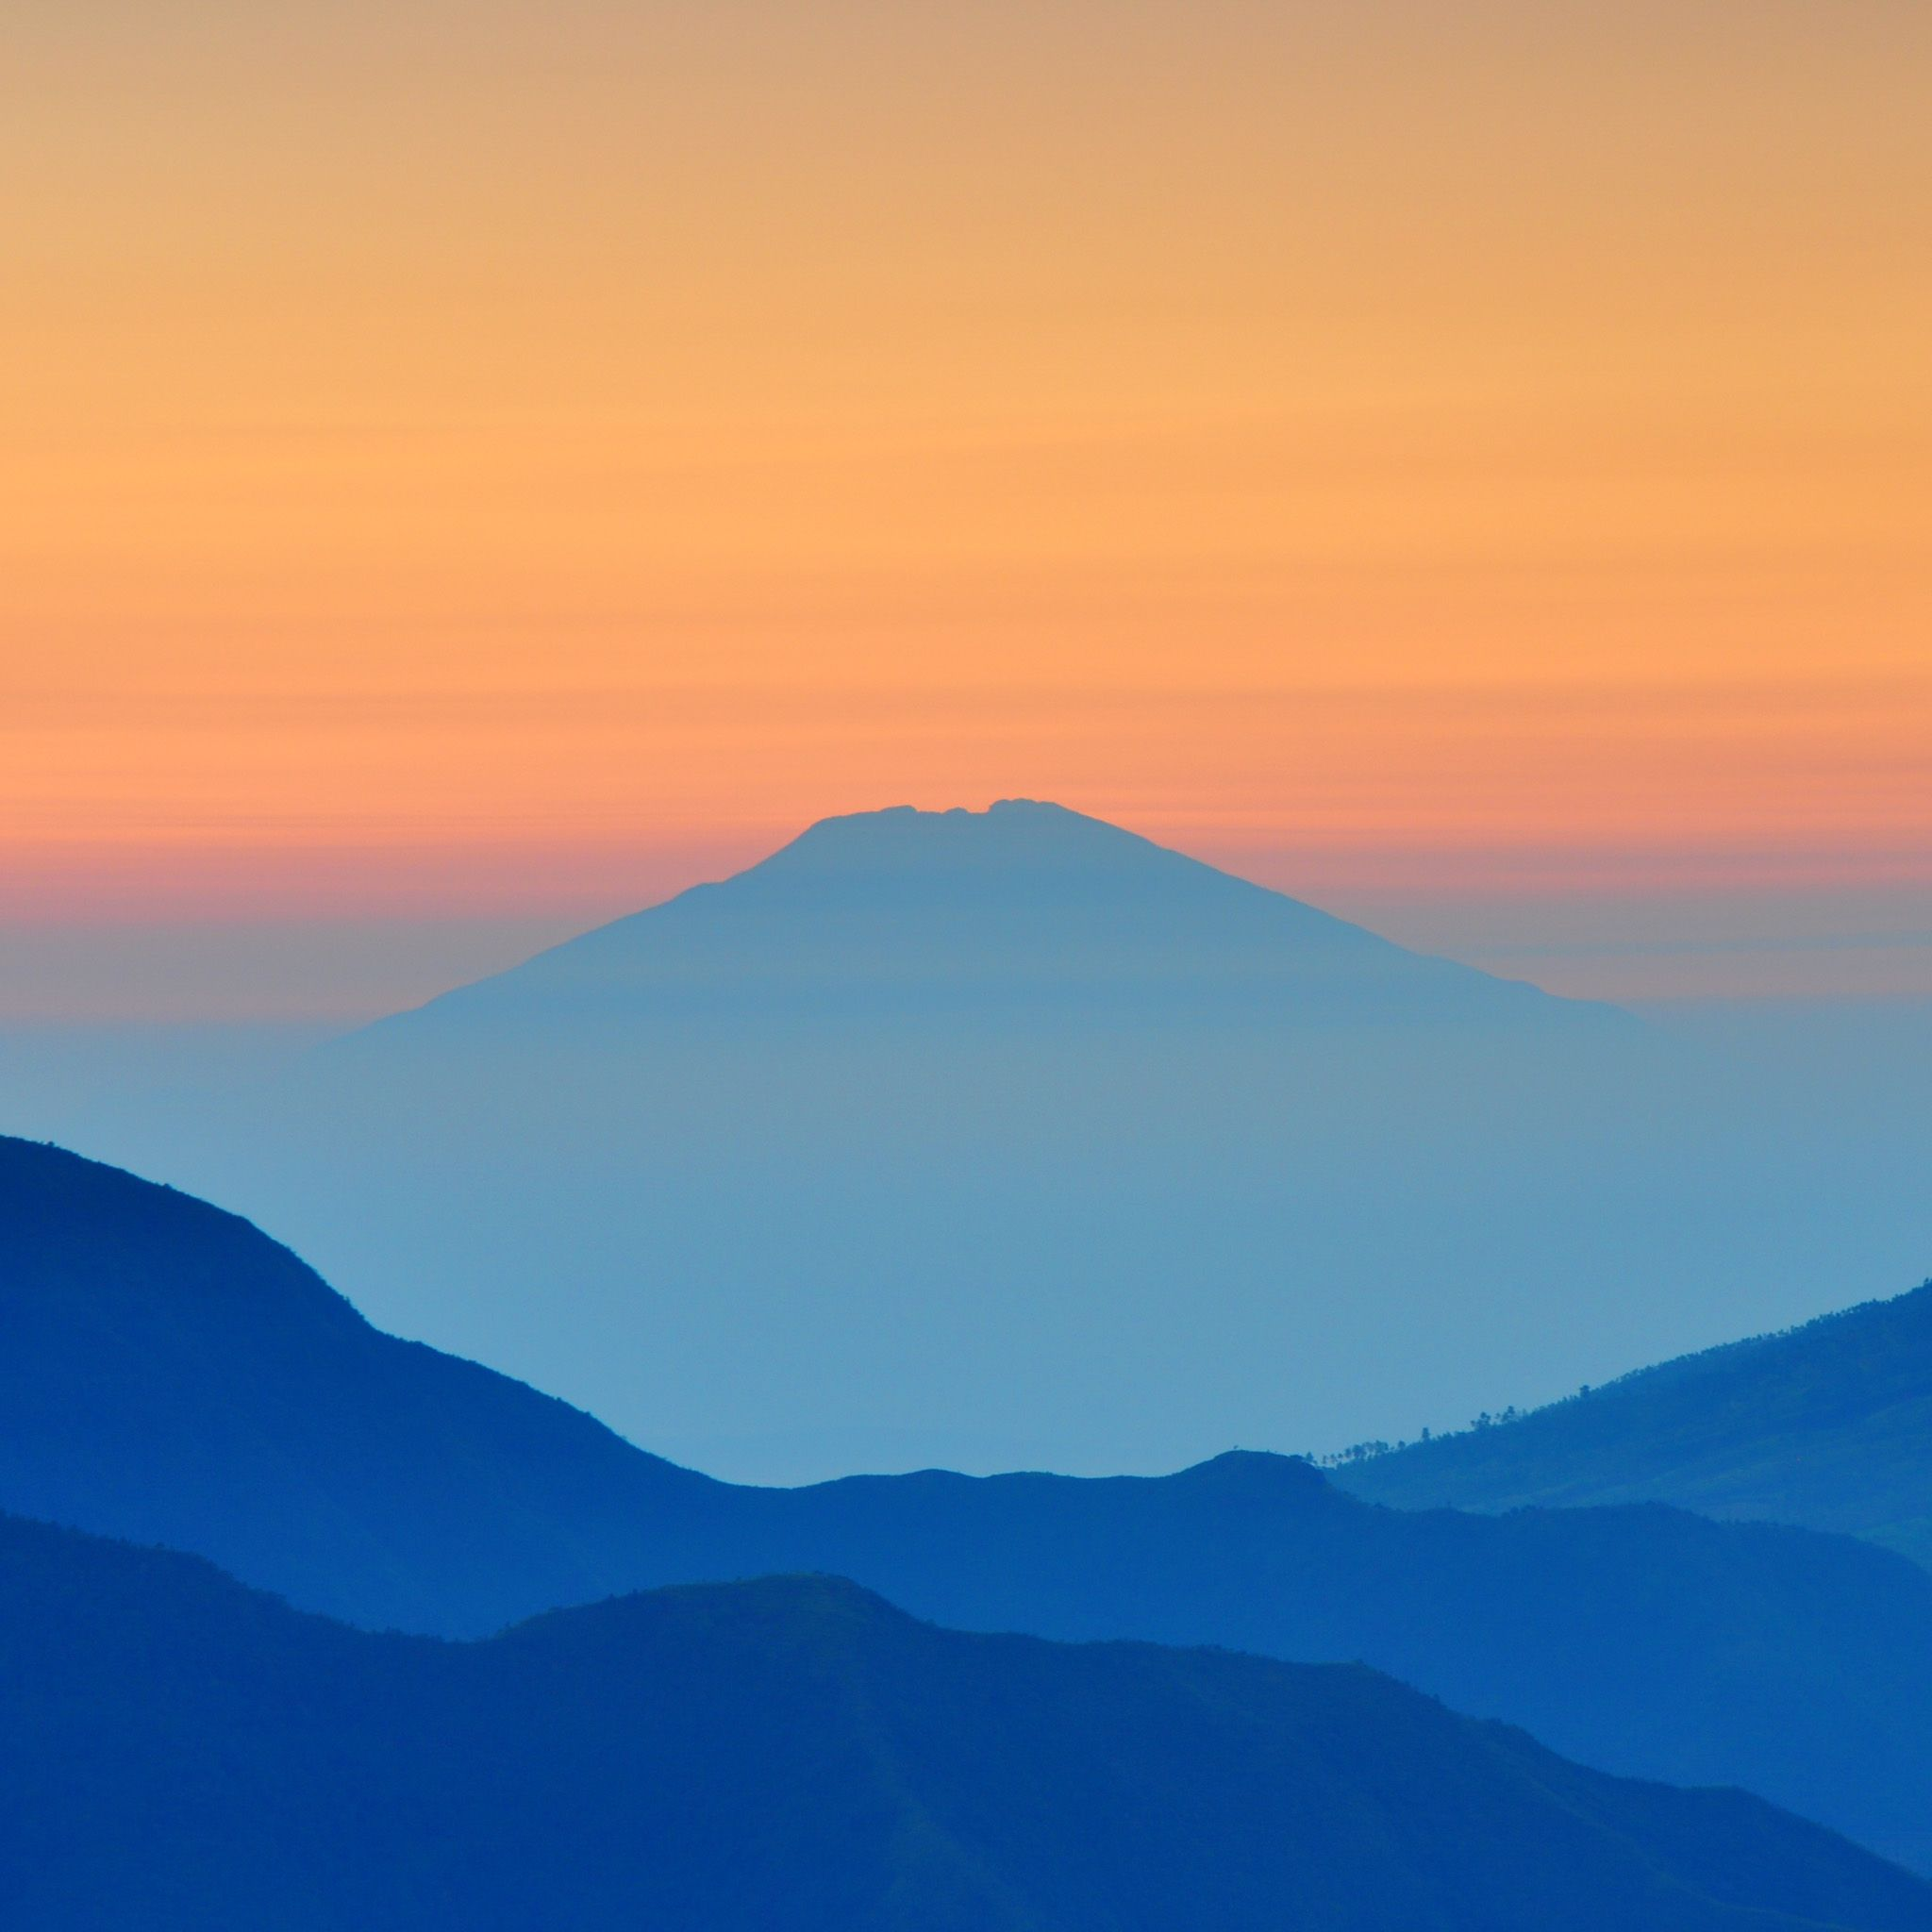 Orange sky and blue mountains landscape. In iPad wallpaper